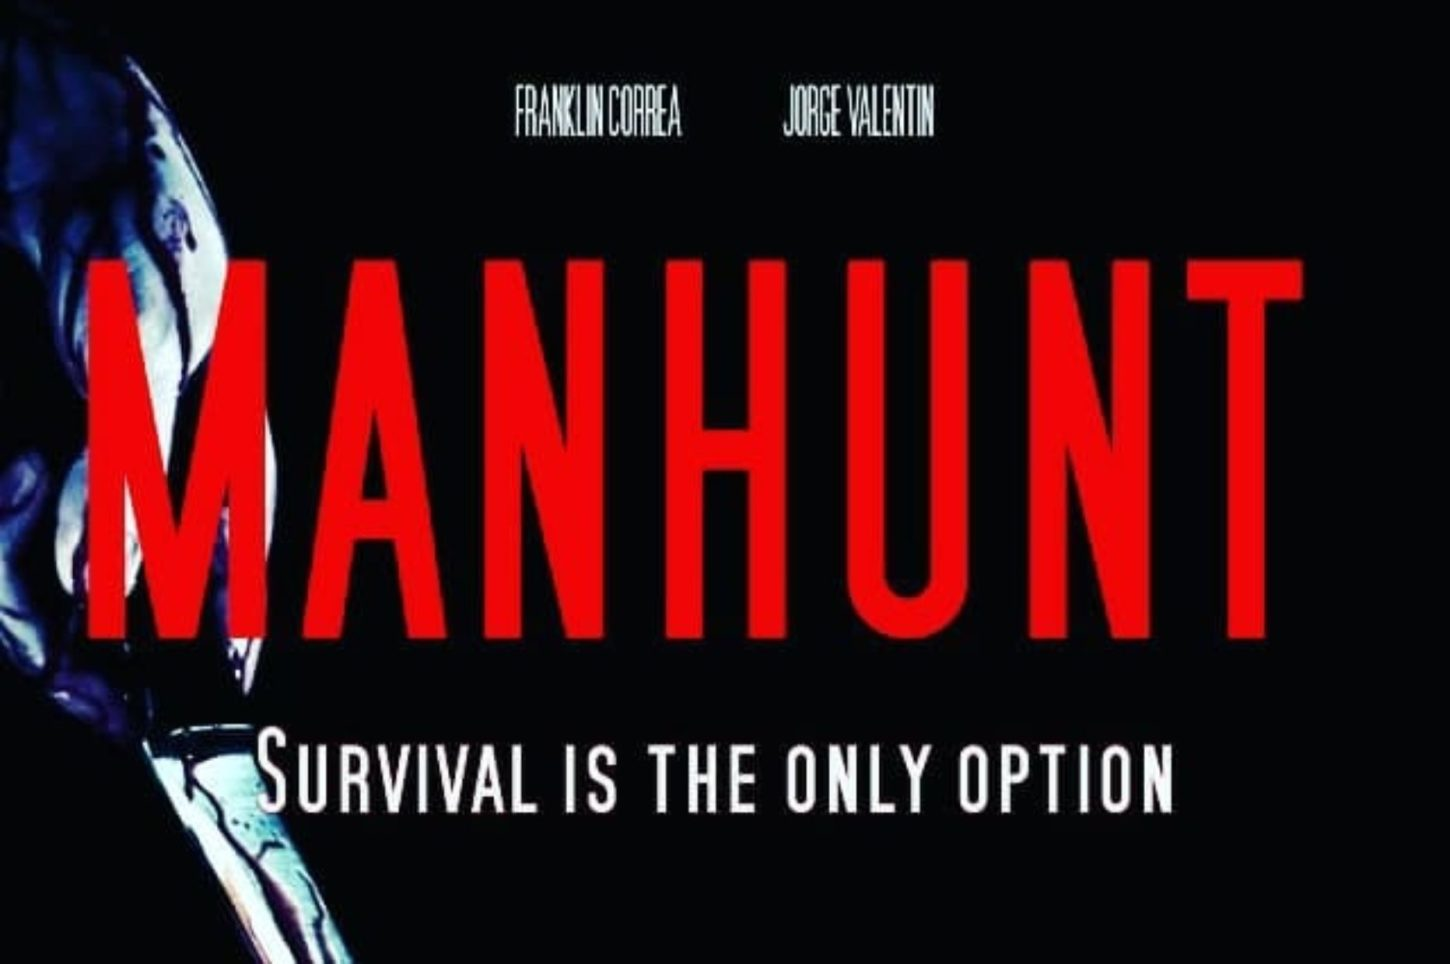 MANHUNT: Franklin Correa has Only One Option in the Trailer for His Newest Action-Thriller!